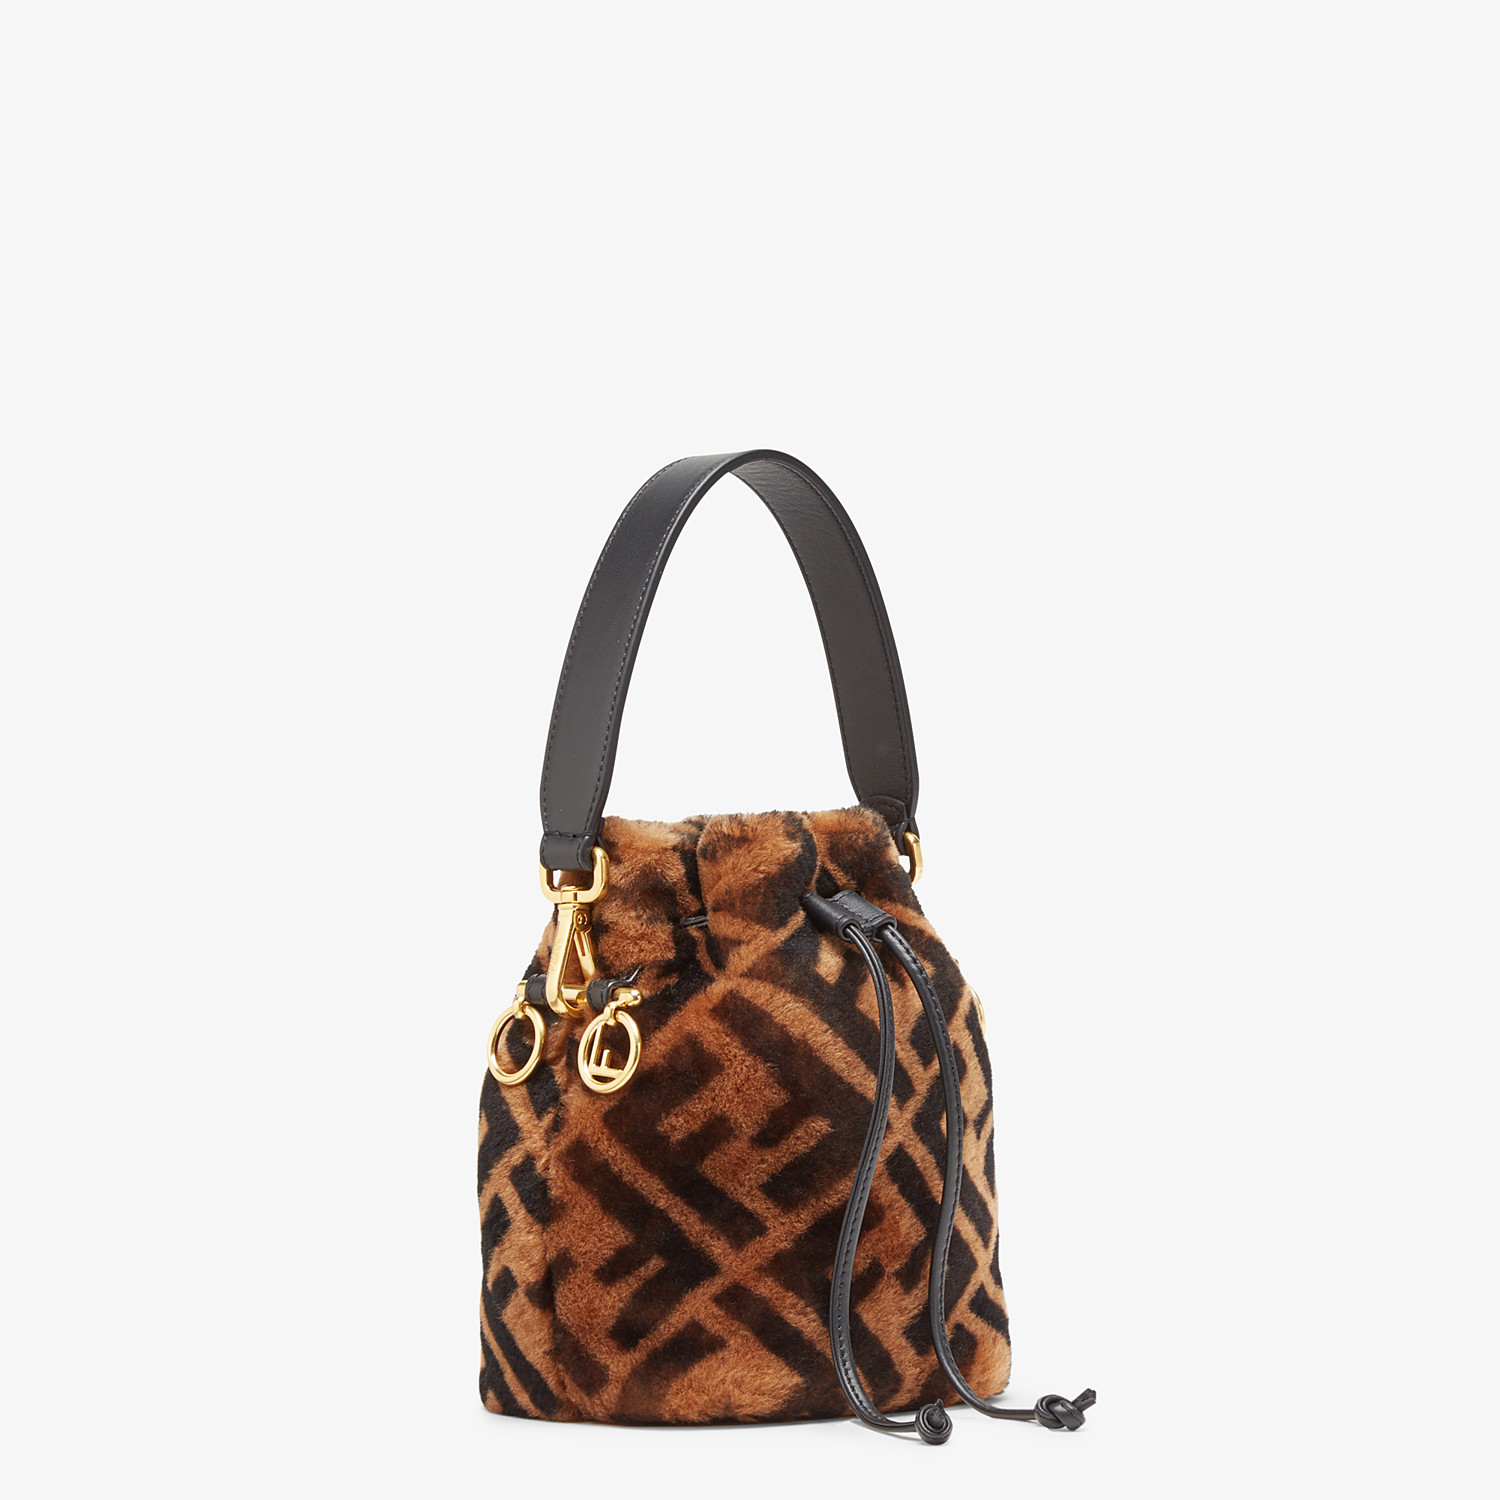 FENDI MON TRESOR - Mini-bag in brown sheepskin - view 2 detail